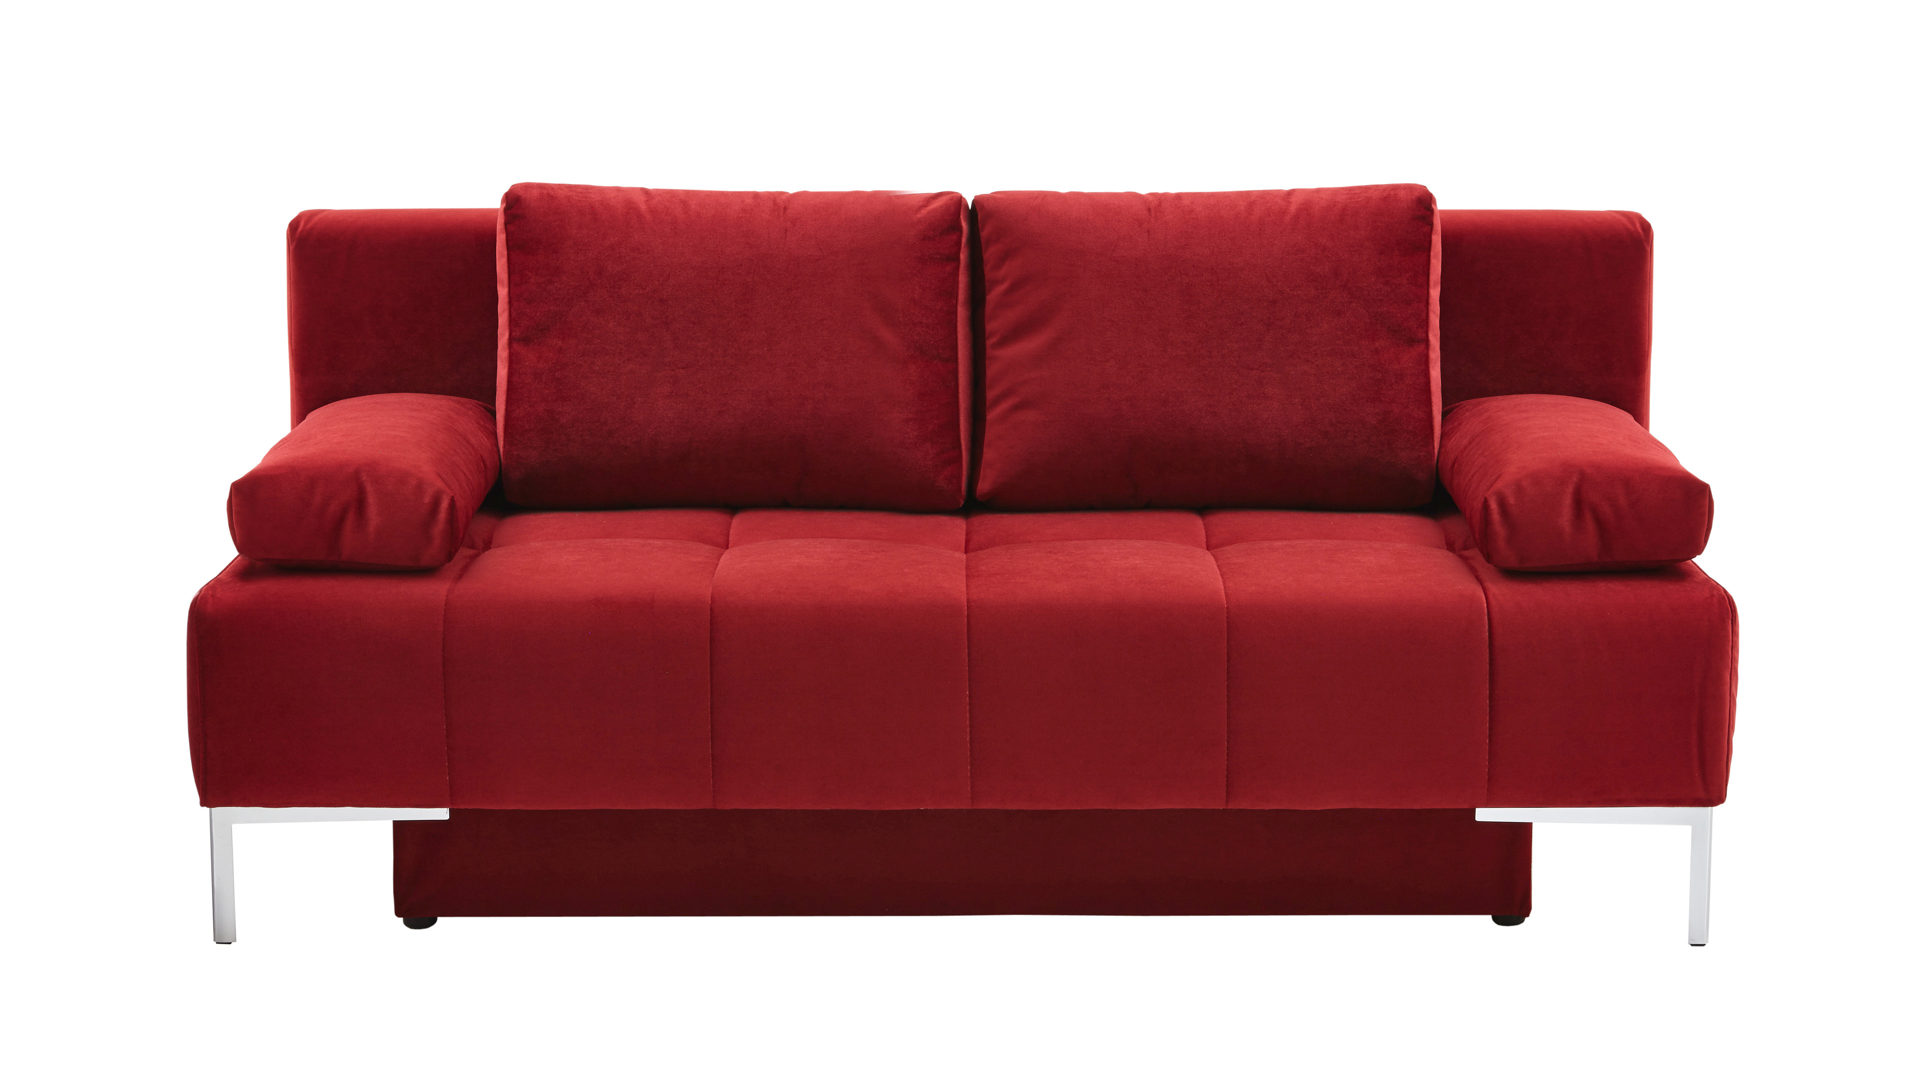 Bequemes Bequemes Schlafsofa Bzw Schlafcouch Roter Bezug 55 6358